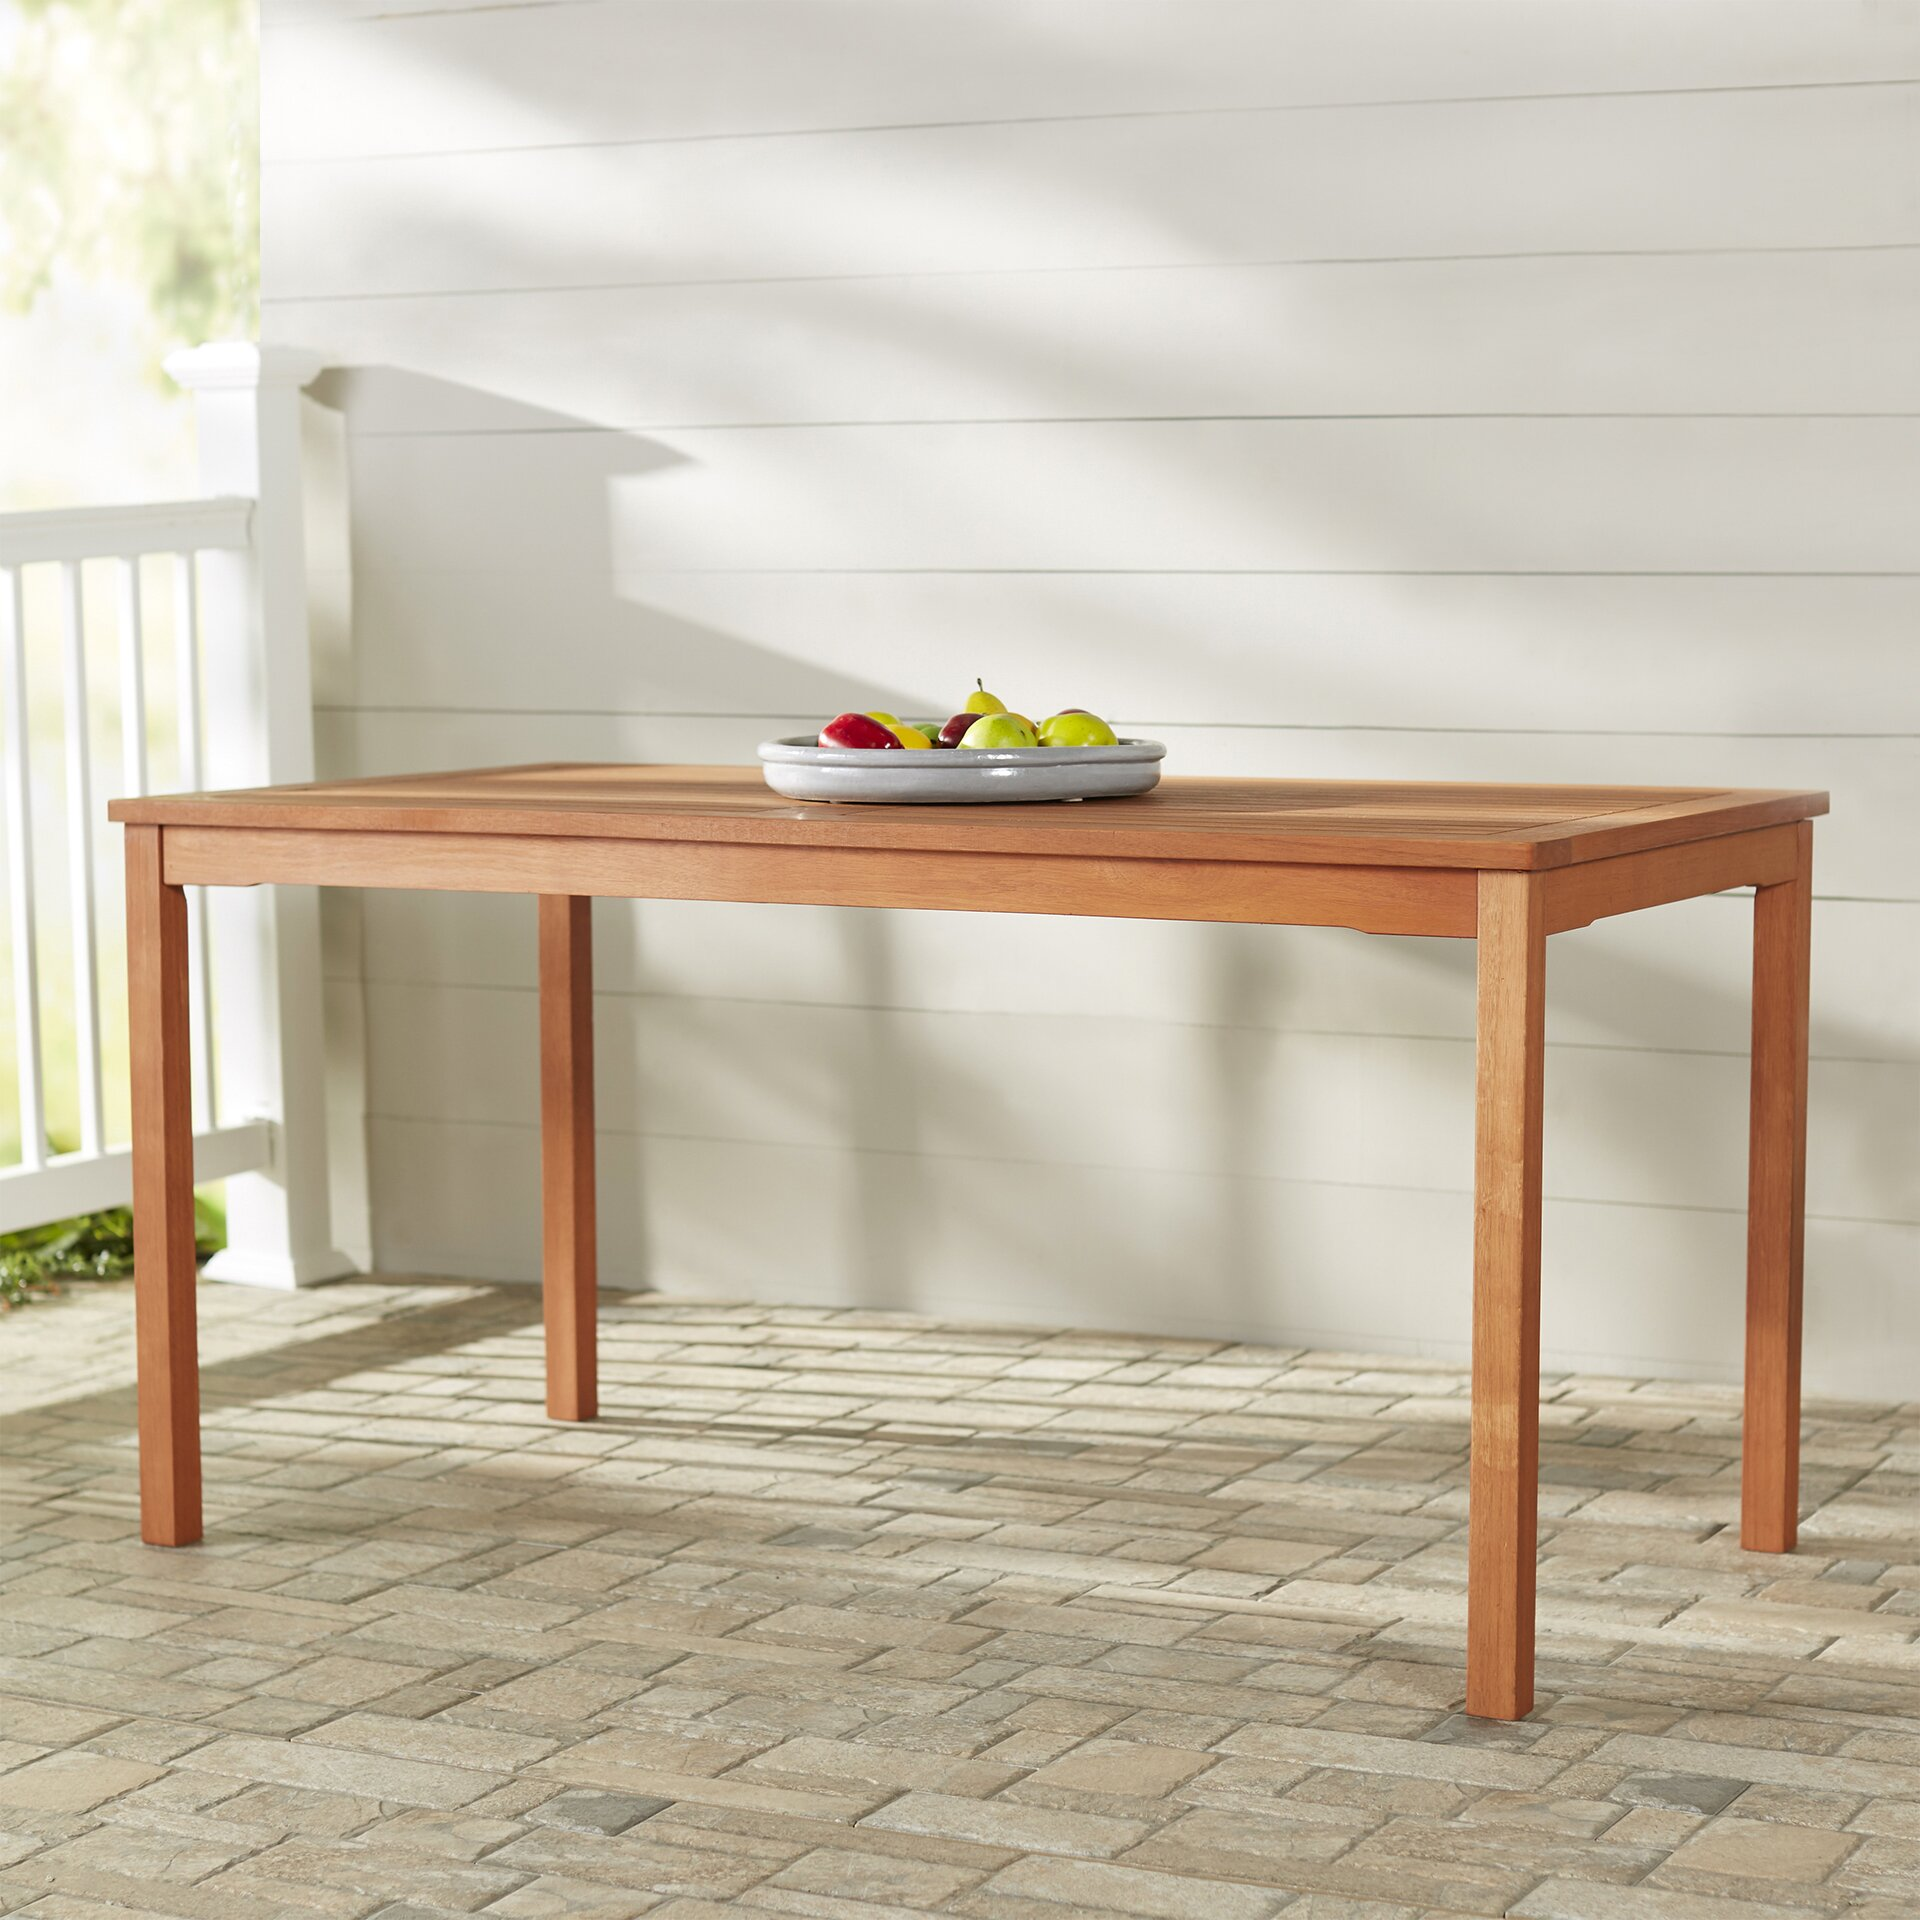 Dining Table Co Darby Home Co Ehlert Rectangular Dining Table Reviews Wayfair